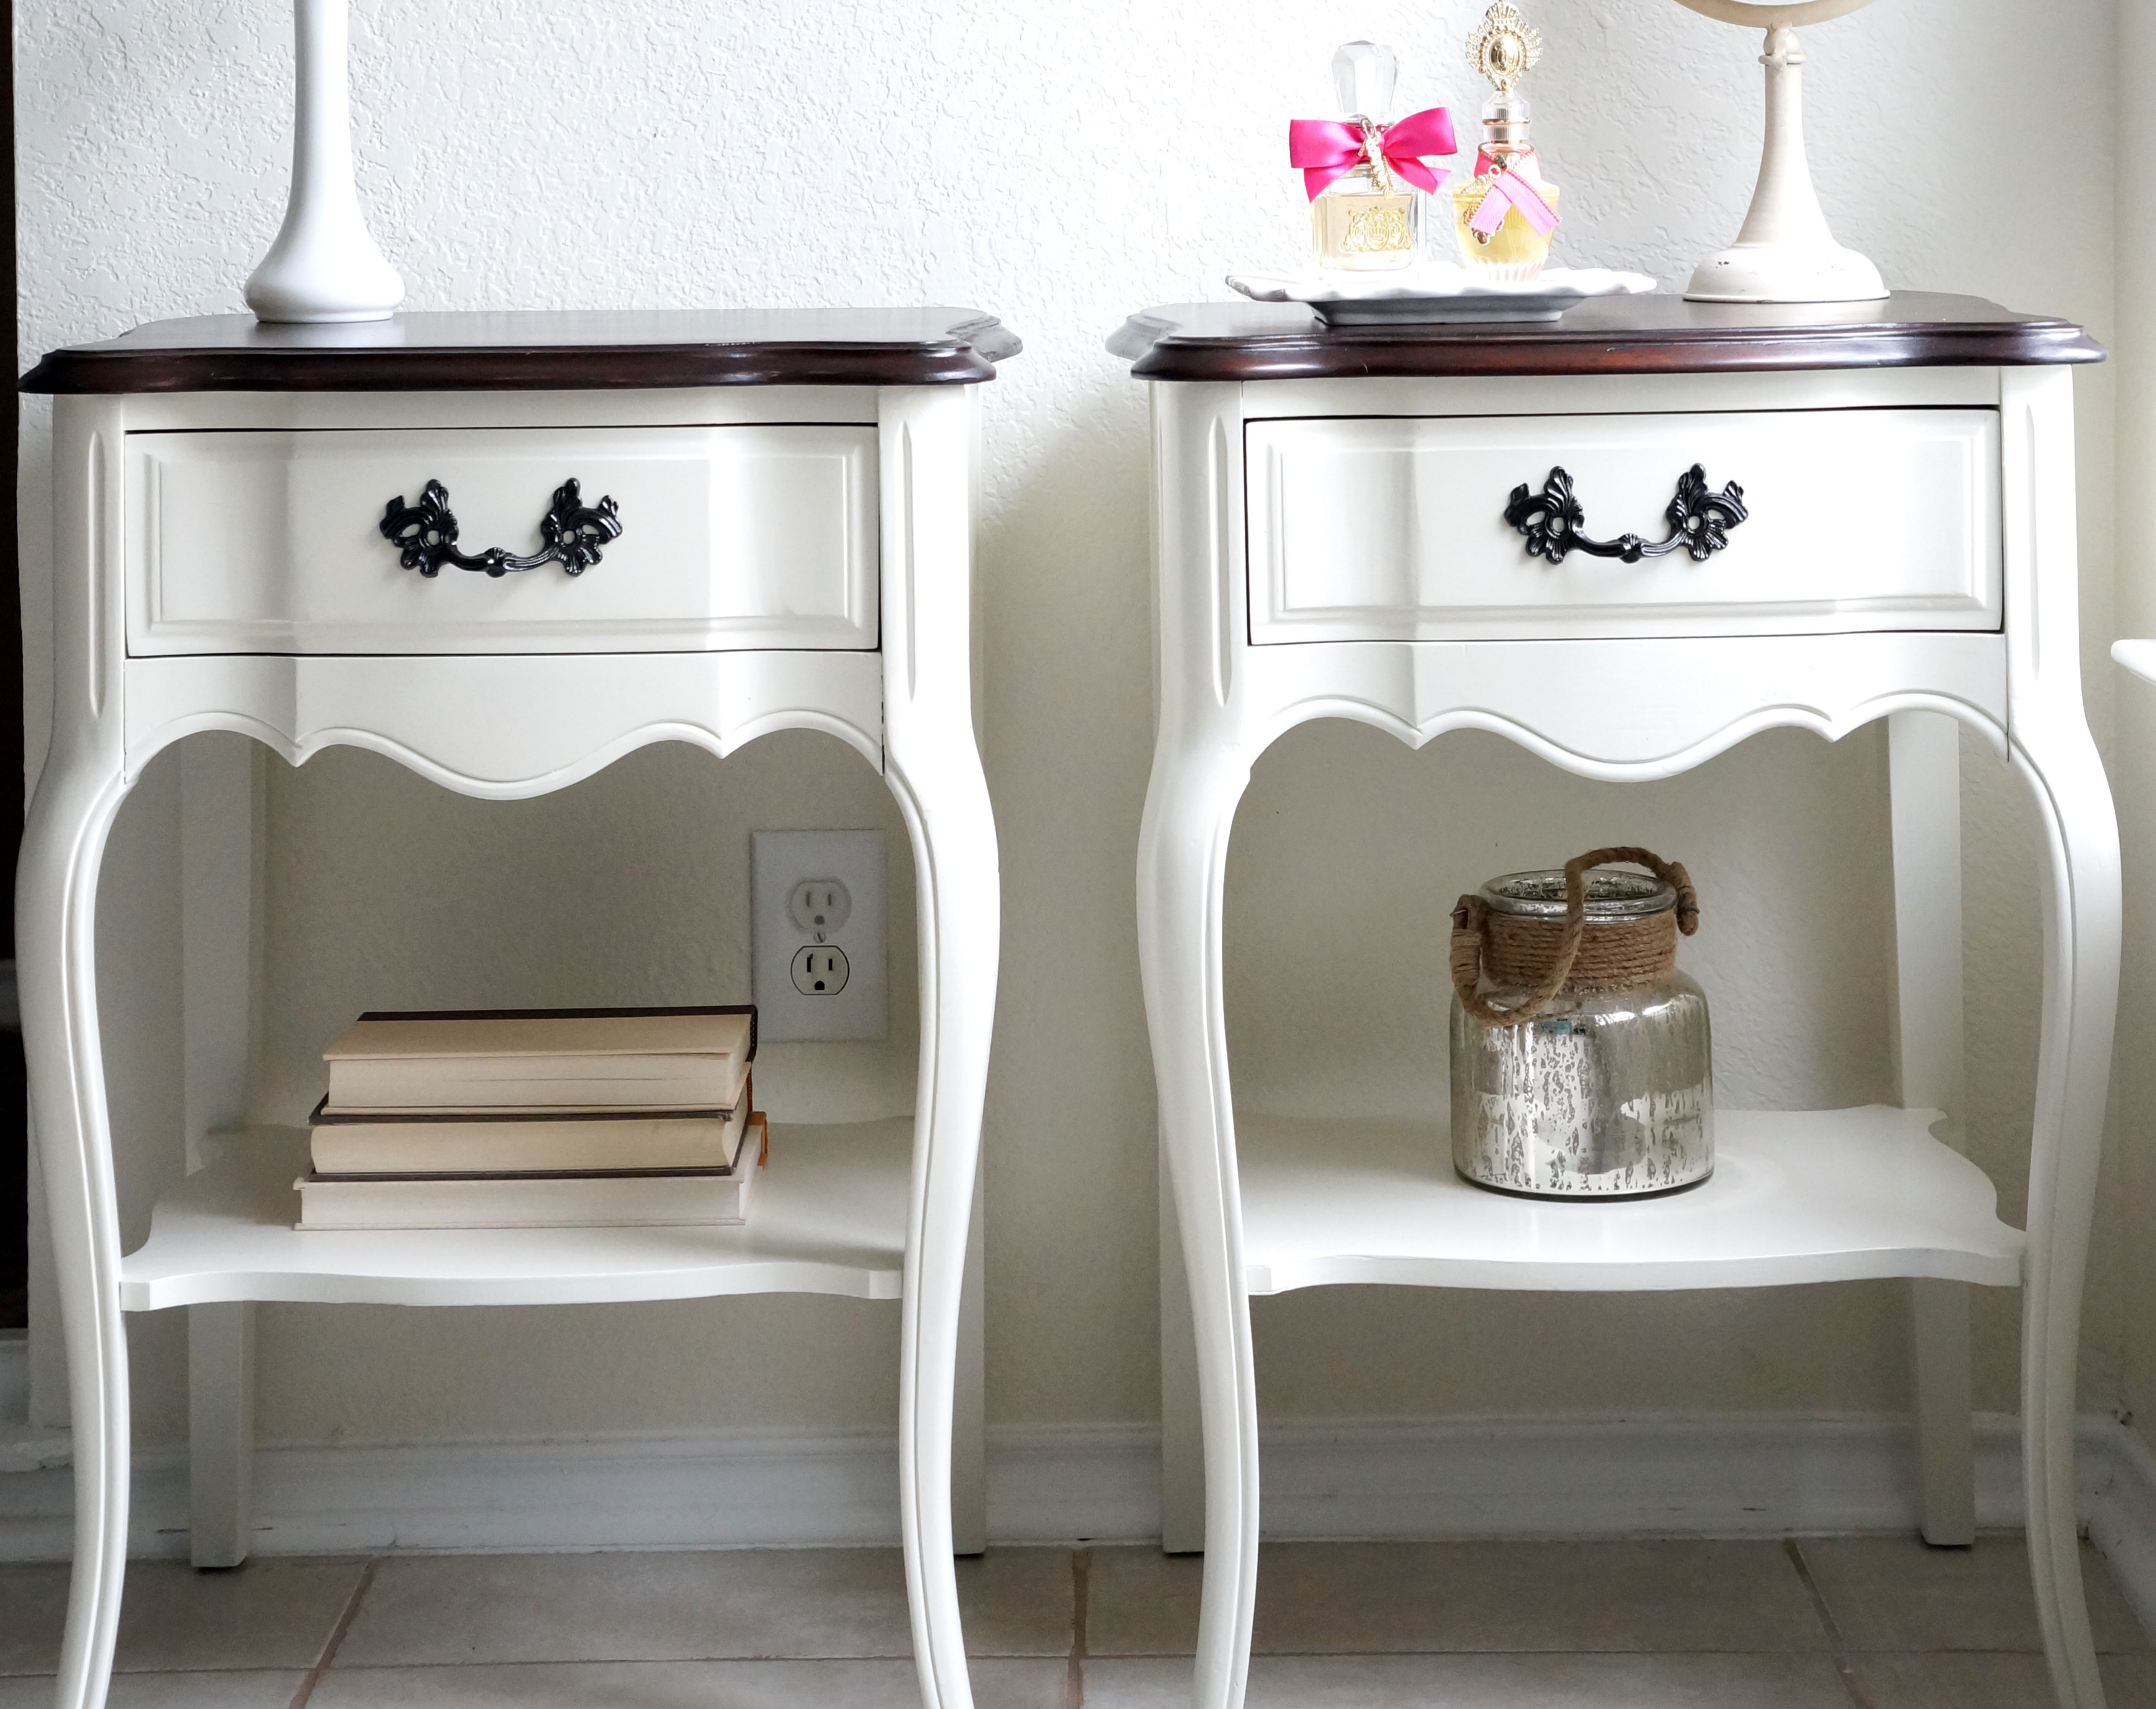 Antique white bedside tables image collections table decoration ideas white french bedside tables white bedside tables online fp antique white bedside tables the driftwood home white french bedside tables white bedside tables watchthetrailerfo